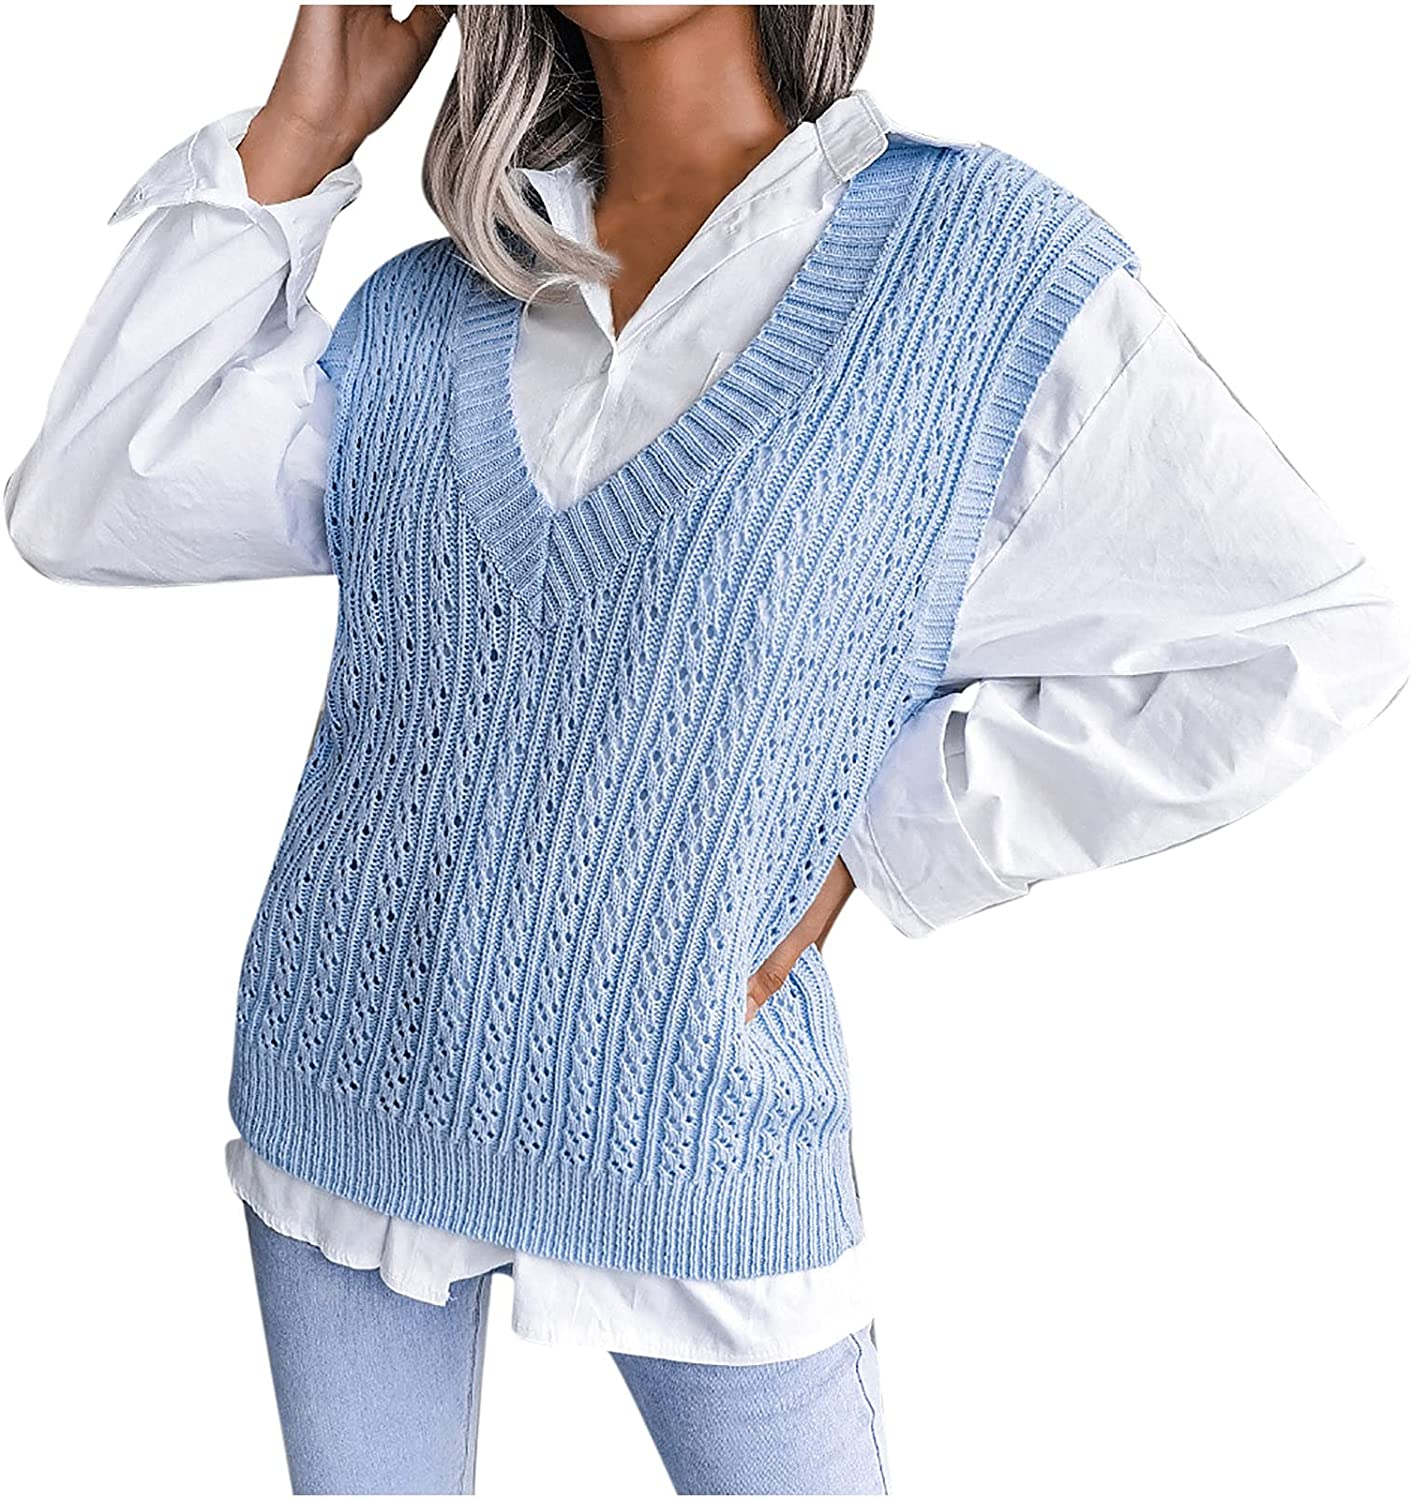 Womens Sweater Vest Sleeveless Knitted Vest V-Neck Hollow Knit Vest for Women Cable Knit Sweater Pullover Knitwear Tops